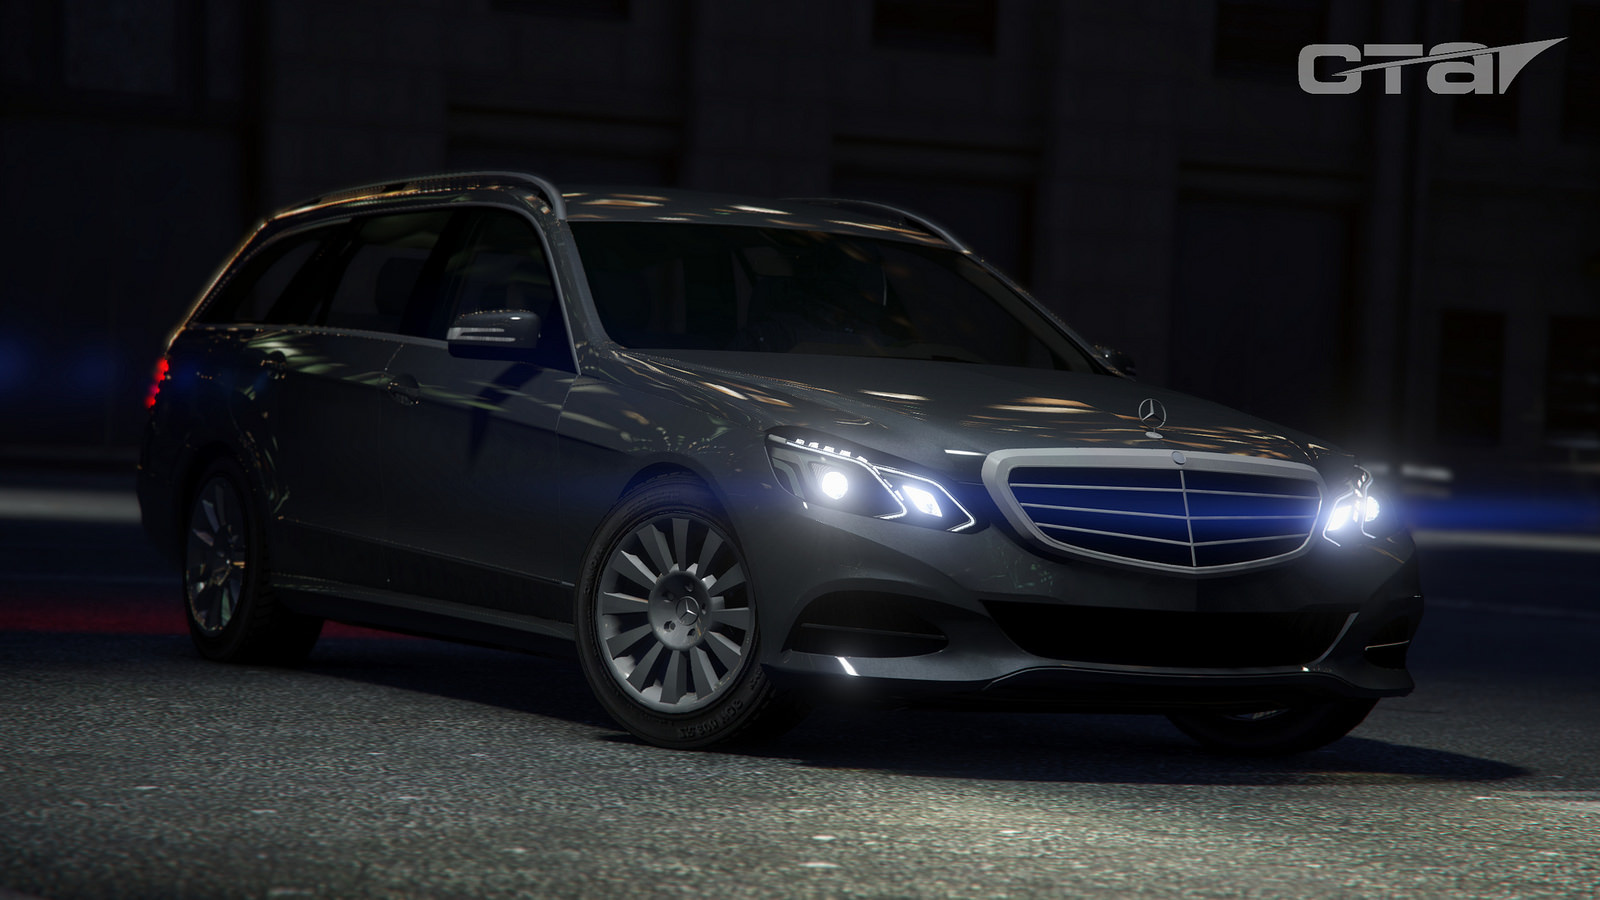 2015 mercedes benz e klasse t modell estate gta5 for 96 mercedes benz